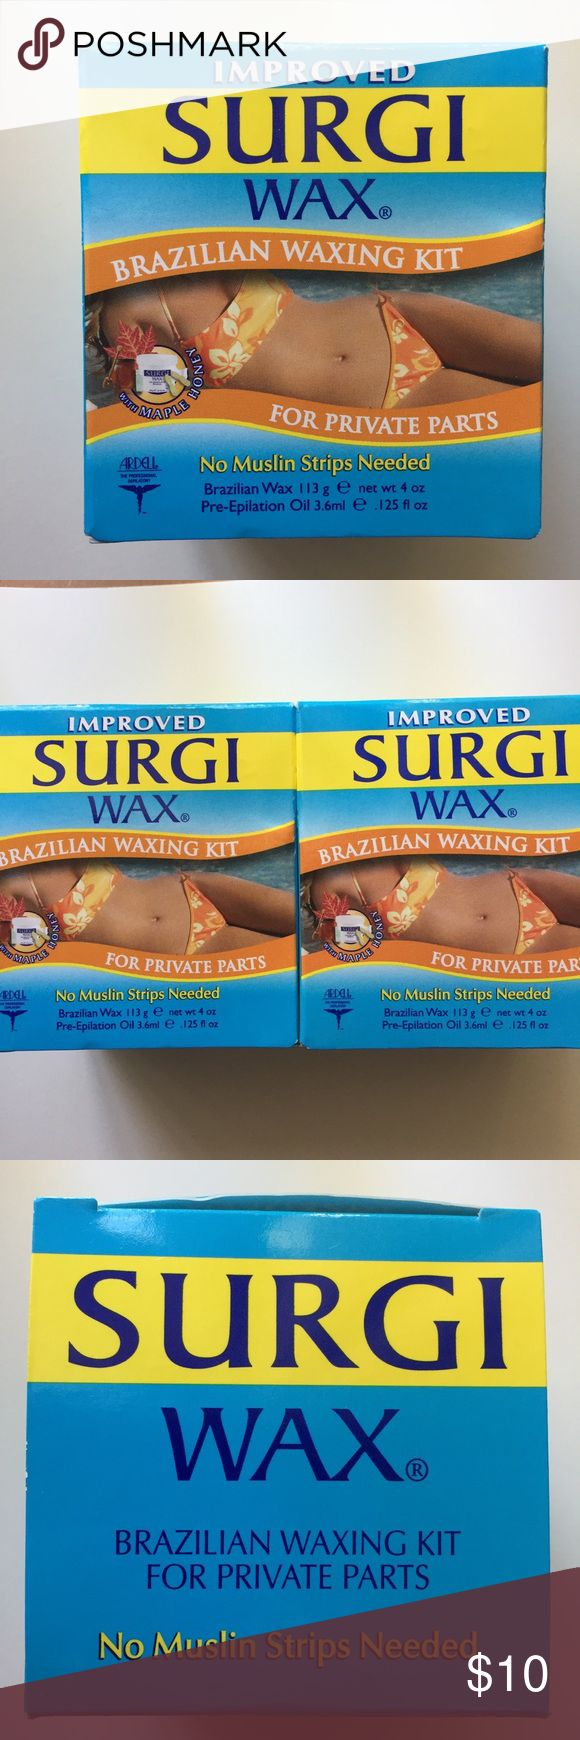 Ardell Surgi Wax Brazilian Waxing Kits Ardell Surgi Wax Brazilian Waxing Kit. Made with maple honey. Includes two unopened boxes. Each box is 4 oz and includes pre-epilation oil and applicator. Ardell Other